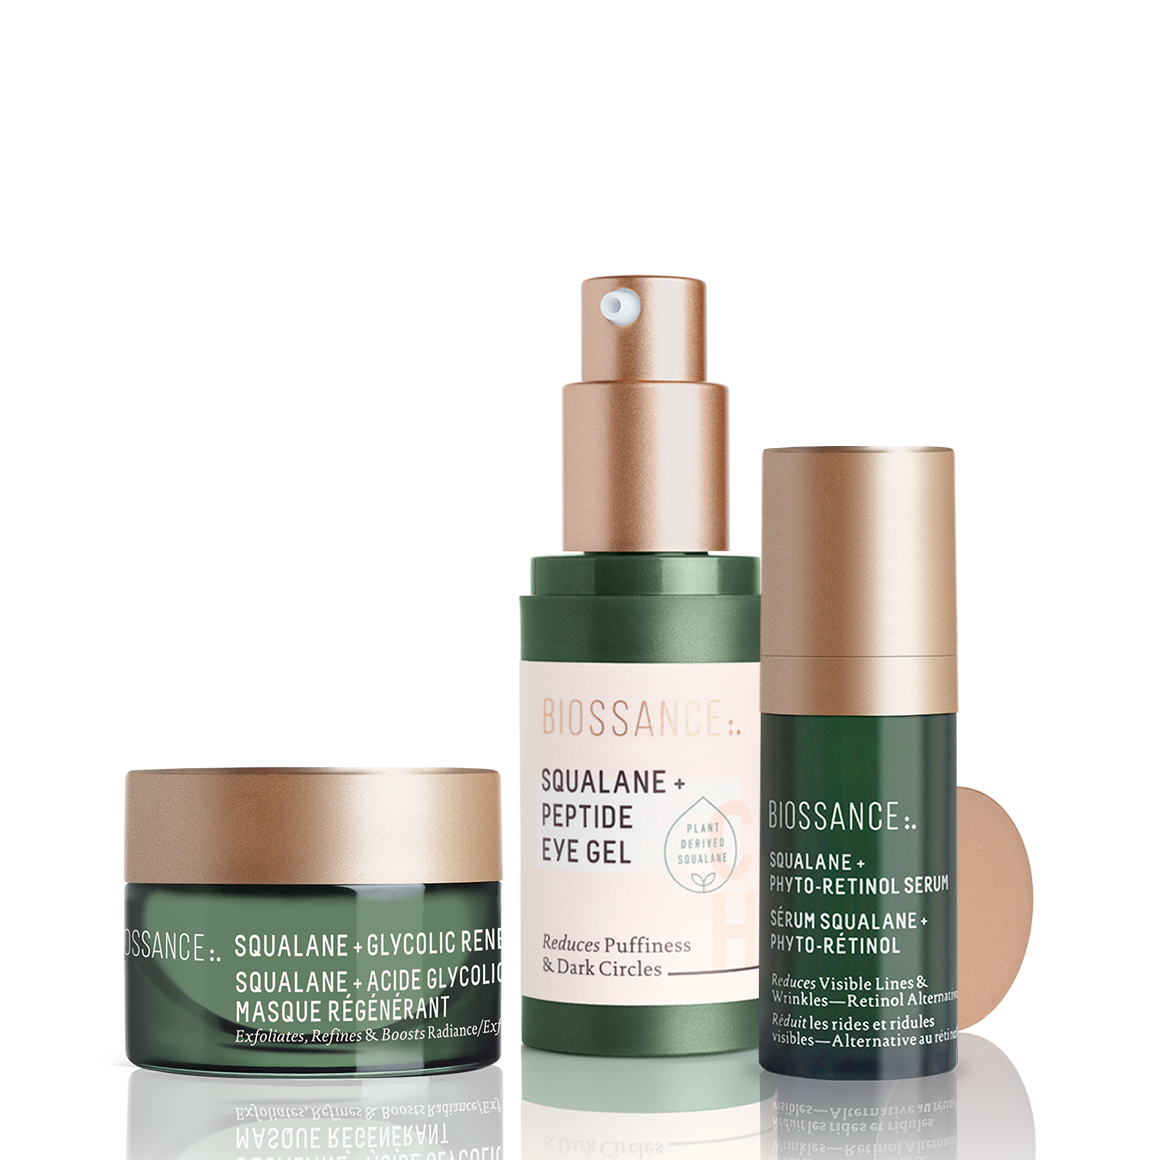 Holiday gifts for her - Biossance Youth Ritual Set